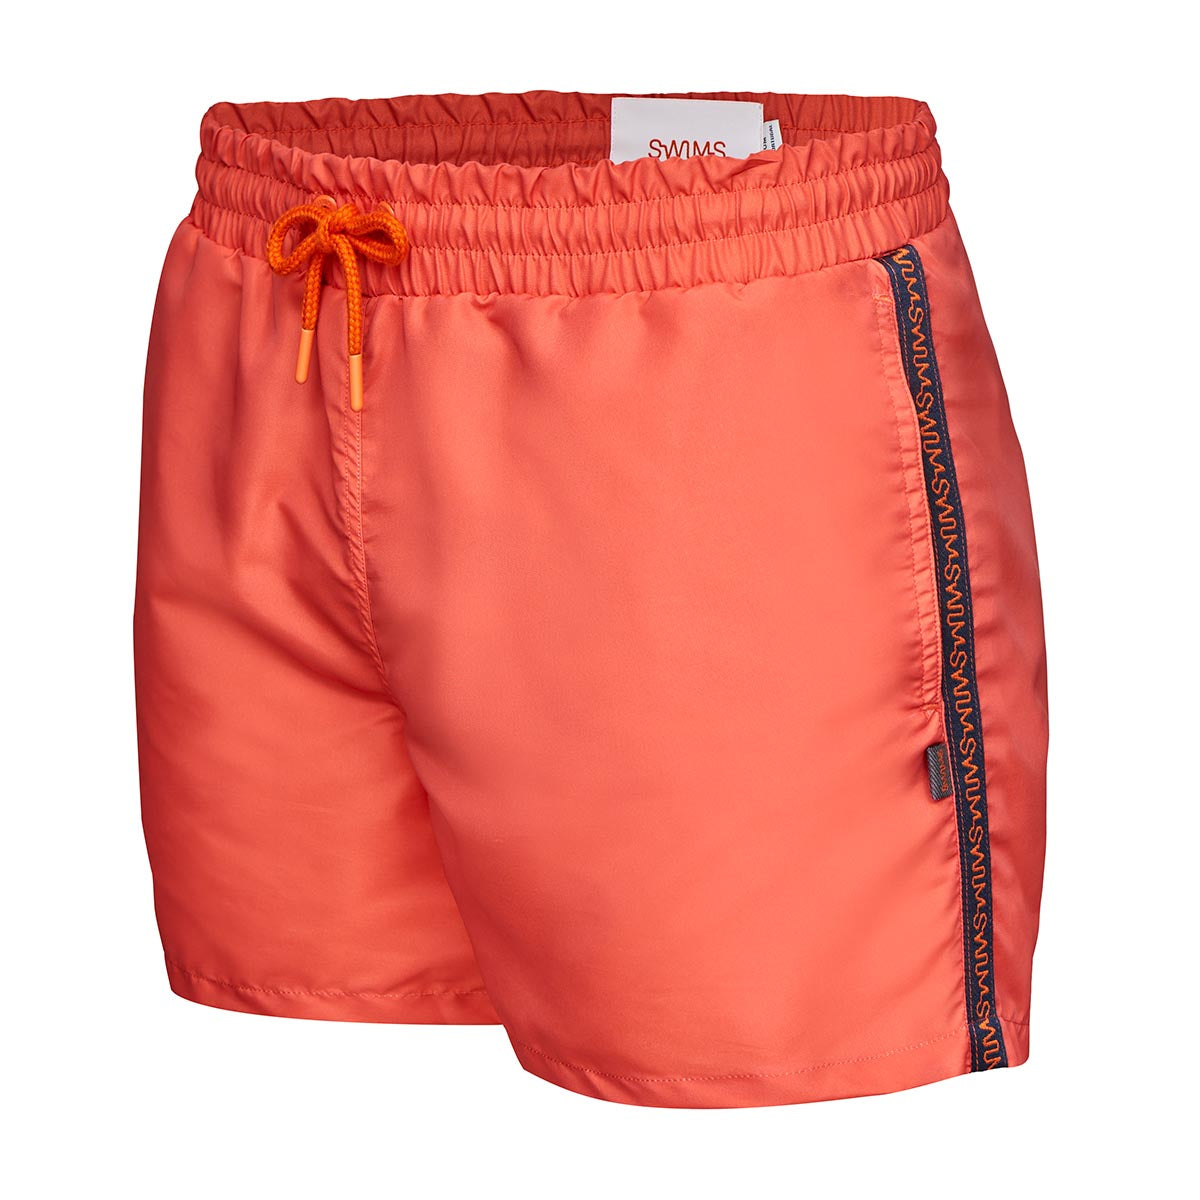 Breeze Portofino Swim Shorts (Short) - background::white,variant::SWIMS Orange